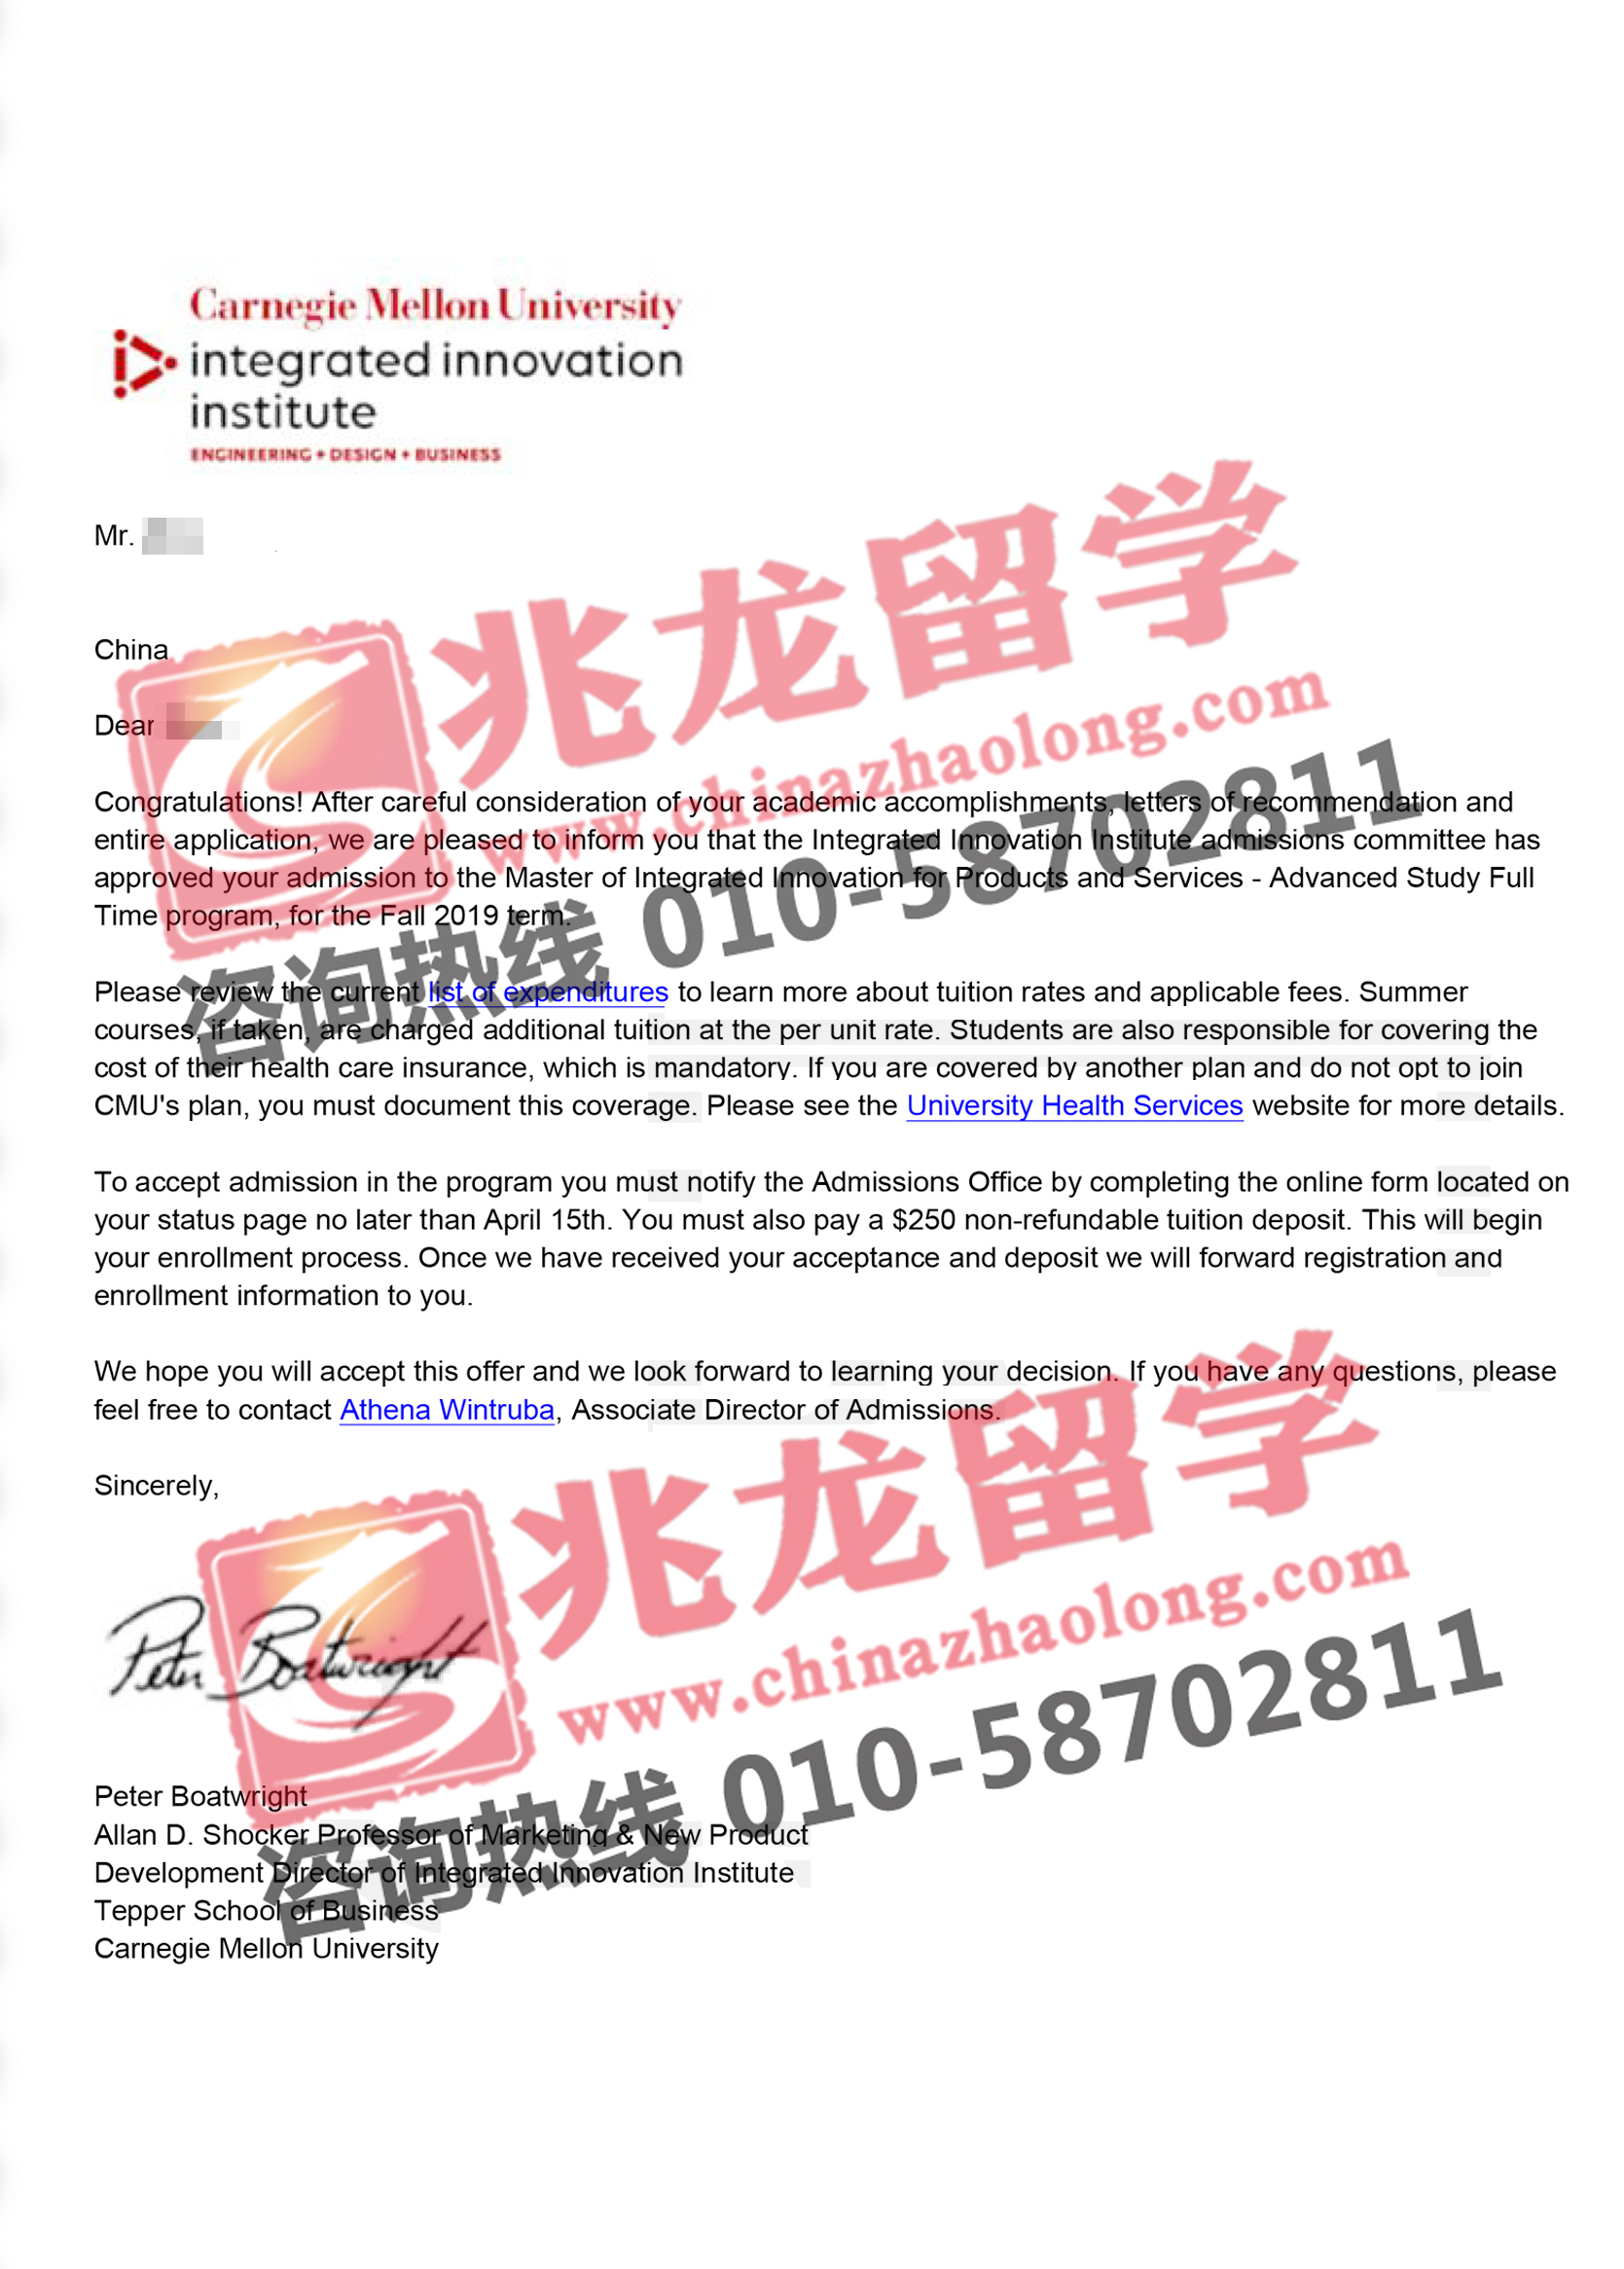 卡内基梅隆大学  Master of  Integrated Innovation for Products and service-advanced Study full time 产品服务整合创新offer-兆龙留学 (2).jpg